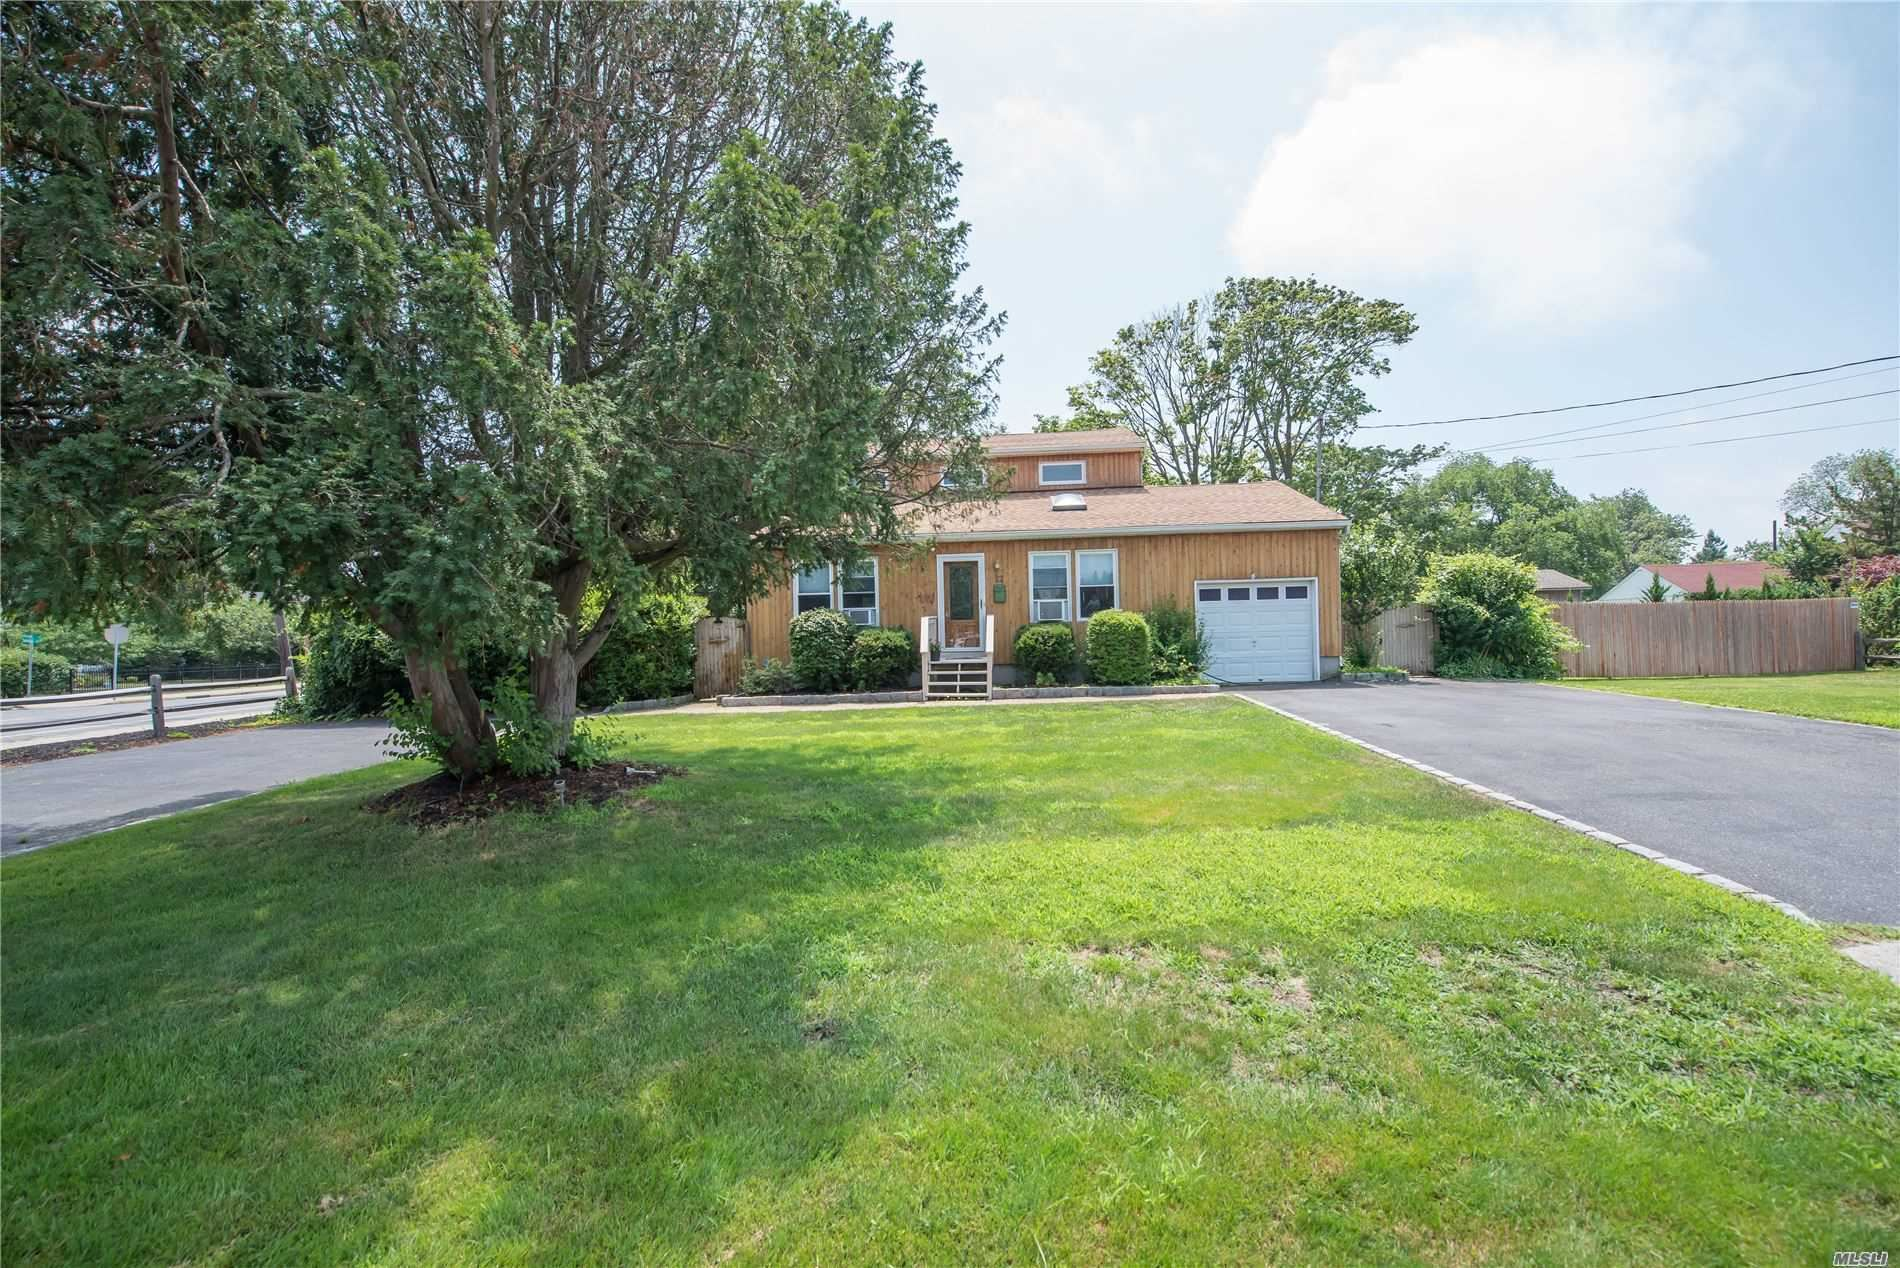 22 Laurel Street, Patchogue, NY 11772 - MLS#: 3235907